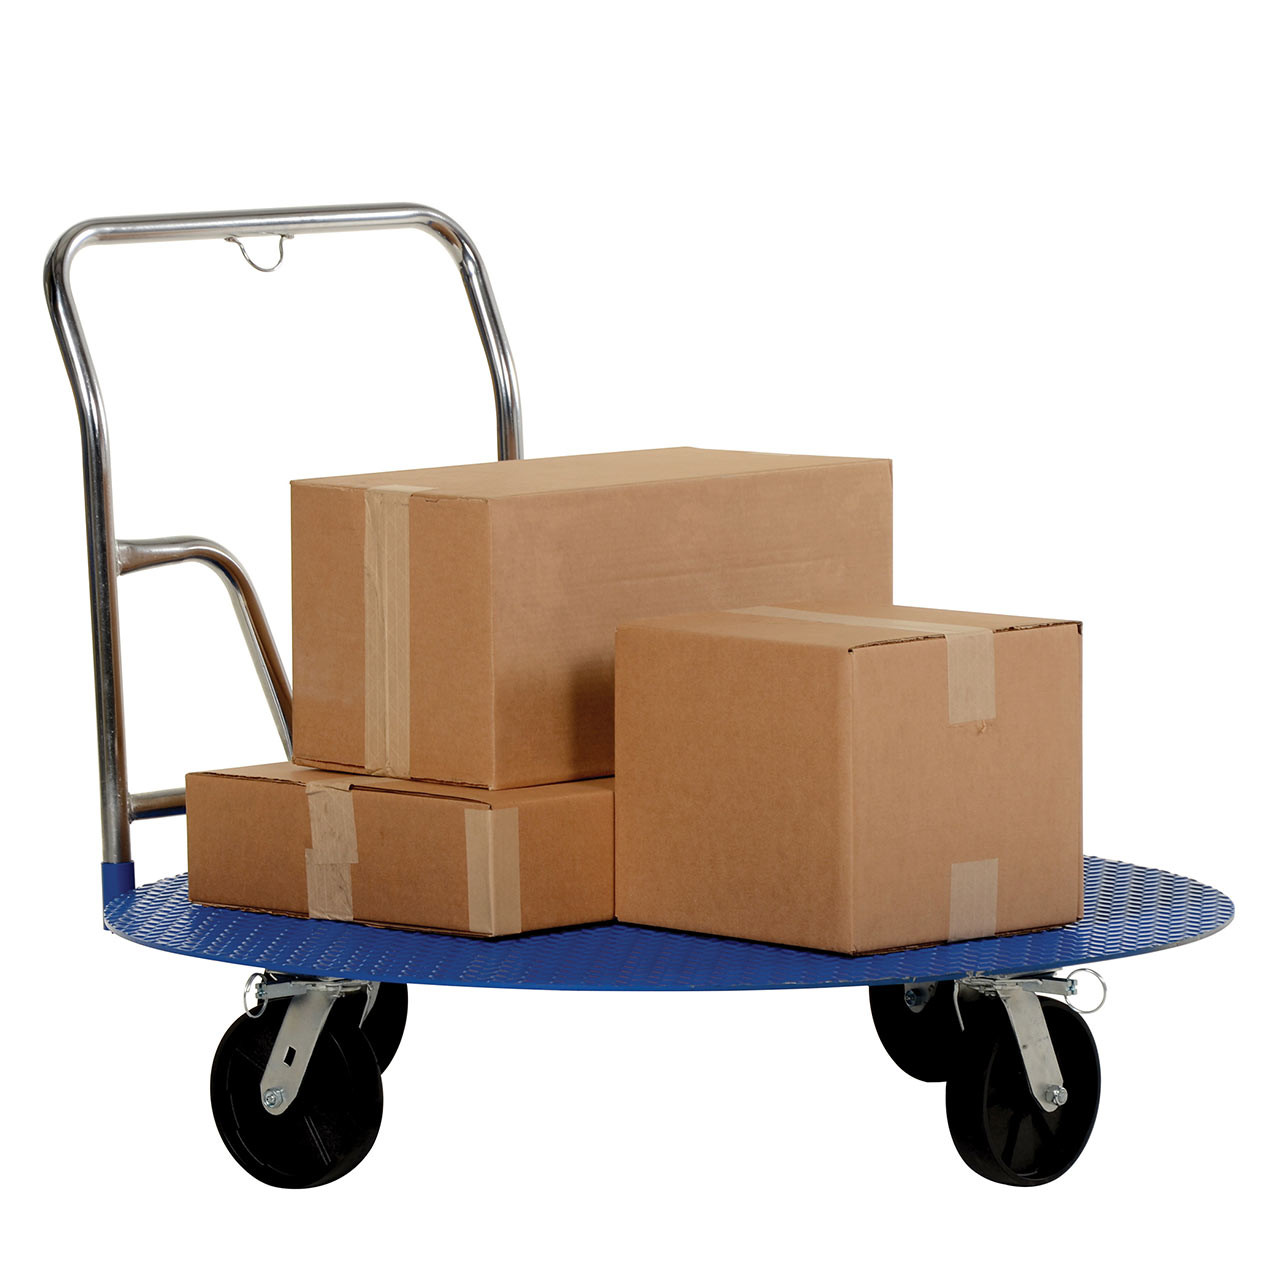 This cart holds and transports products smoothly and easily